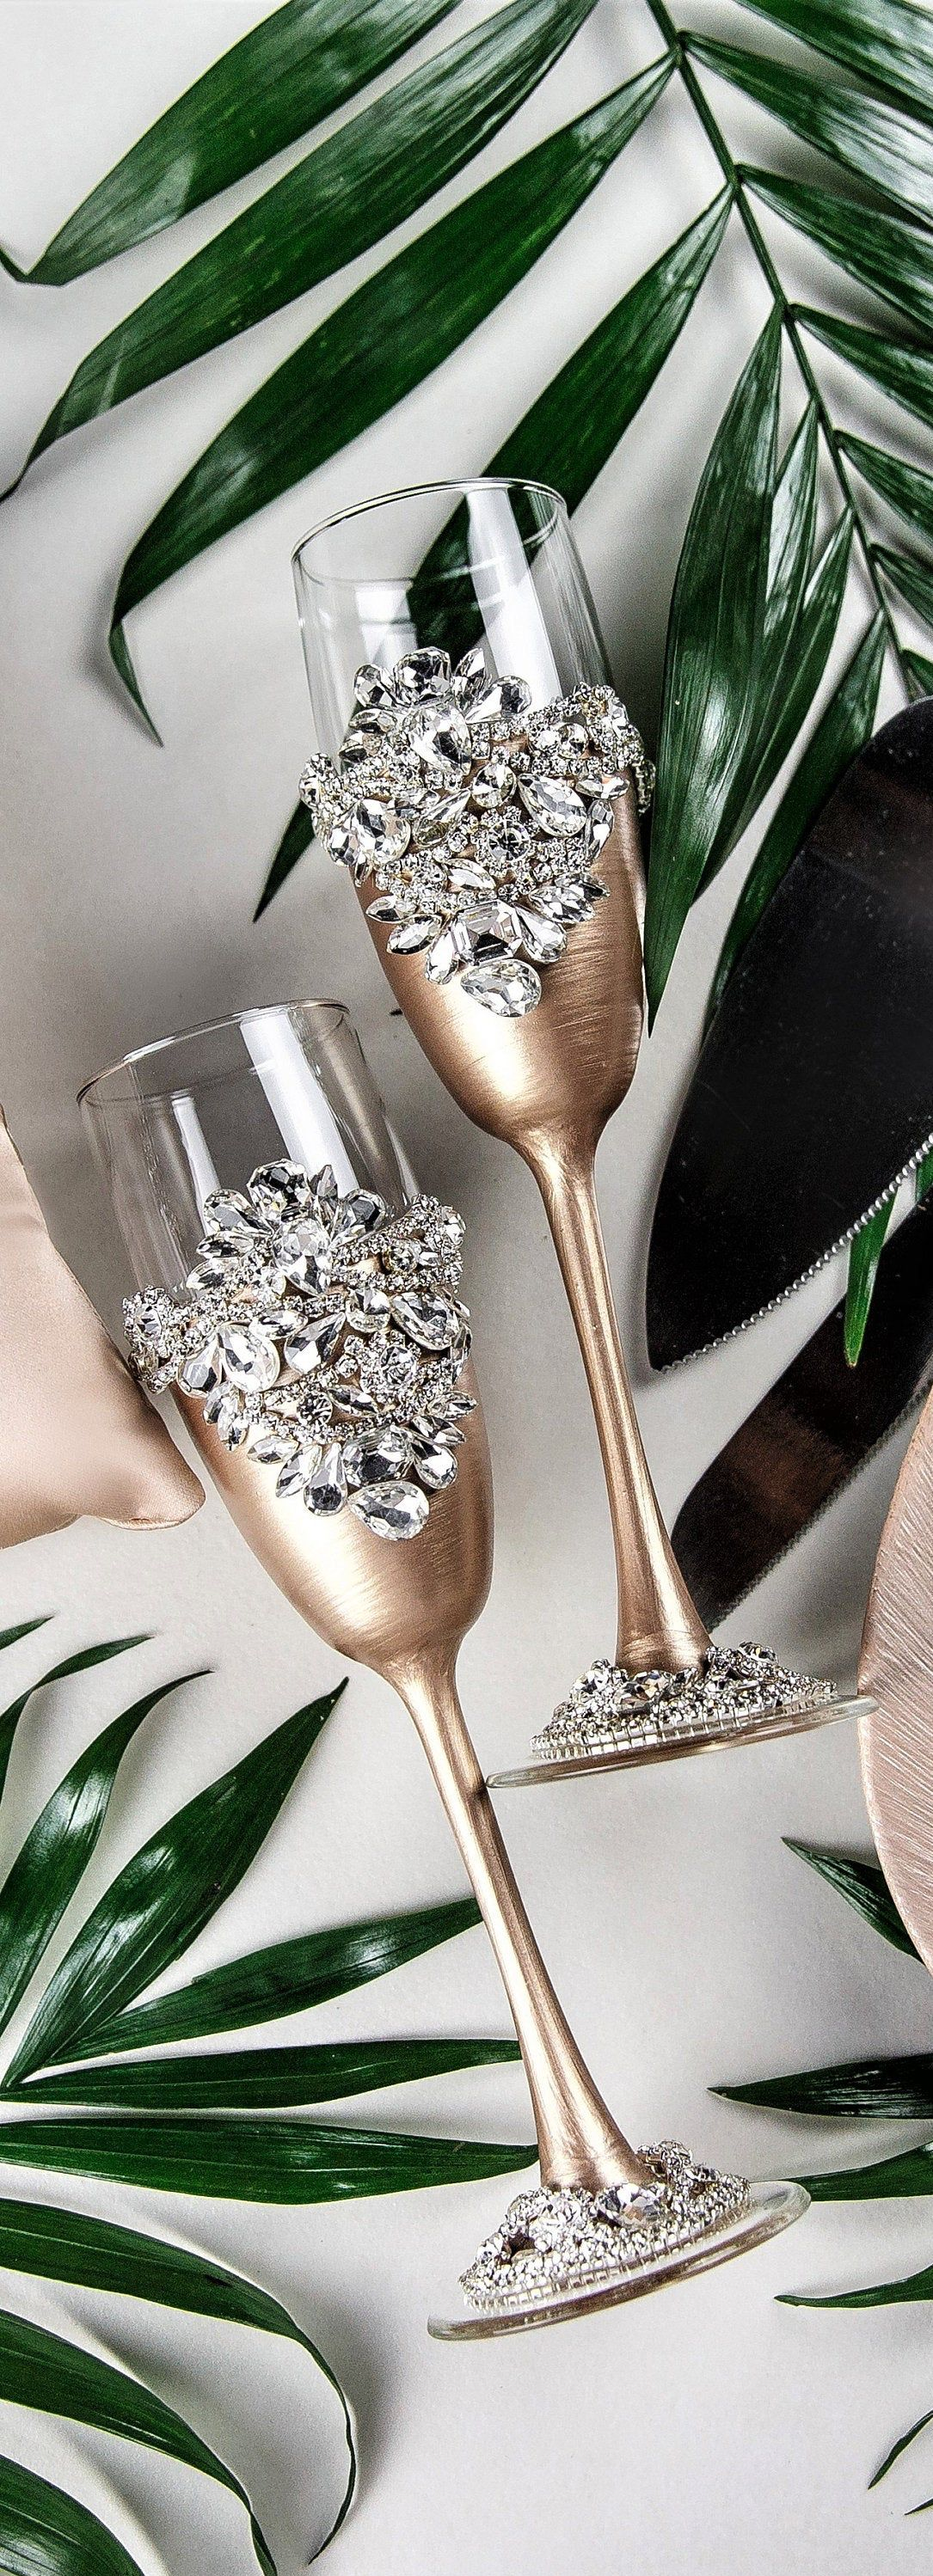 Engraved champagne flutes ans cake cutter set plate and